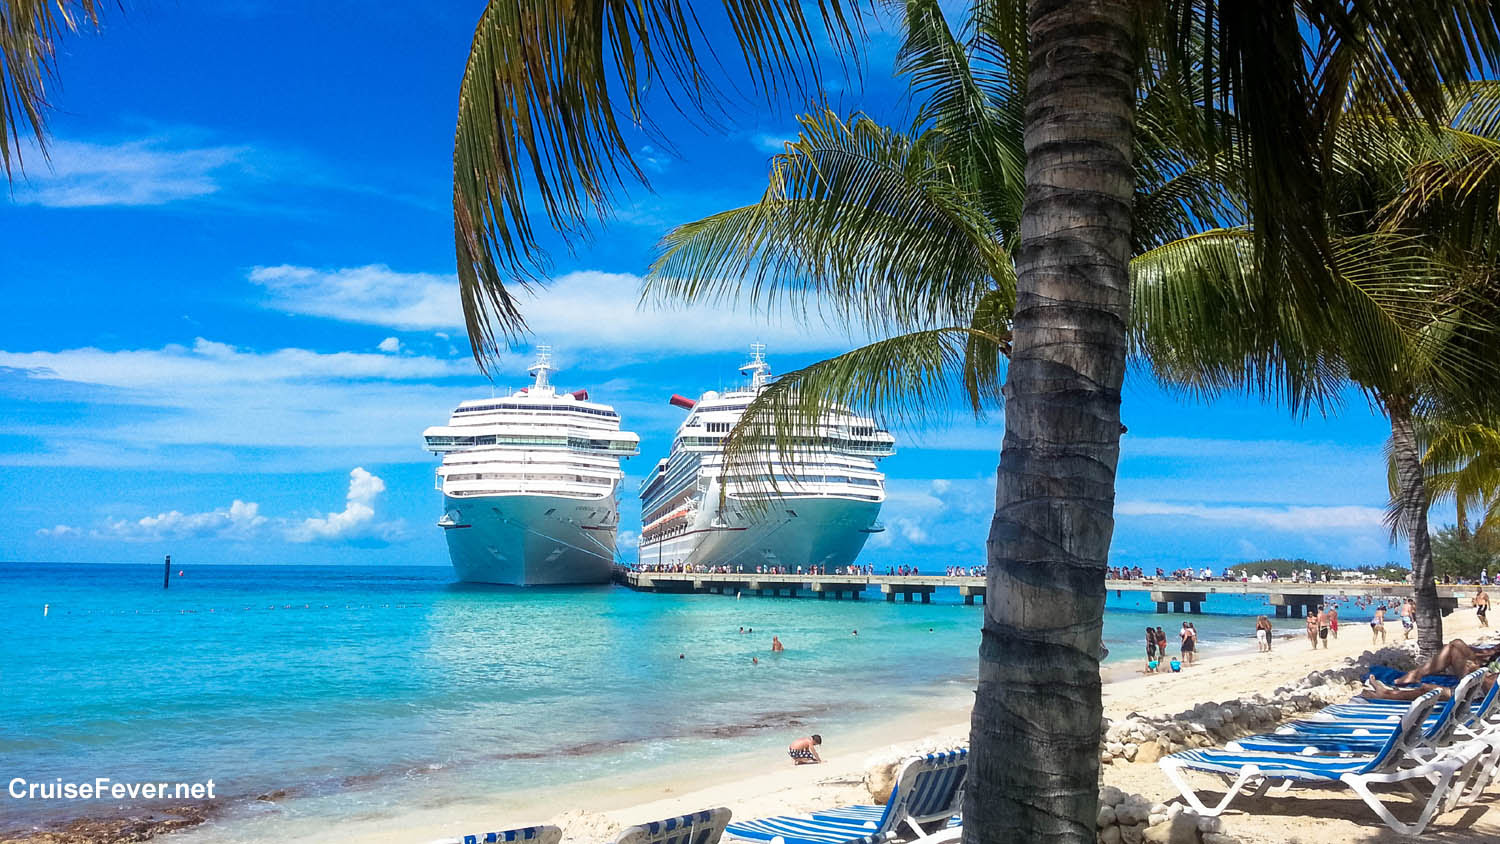 Expedia Cruise Deals Discover the World with Limited